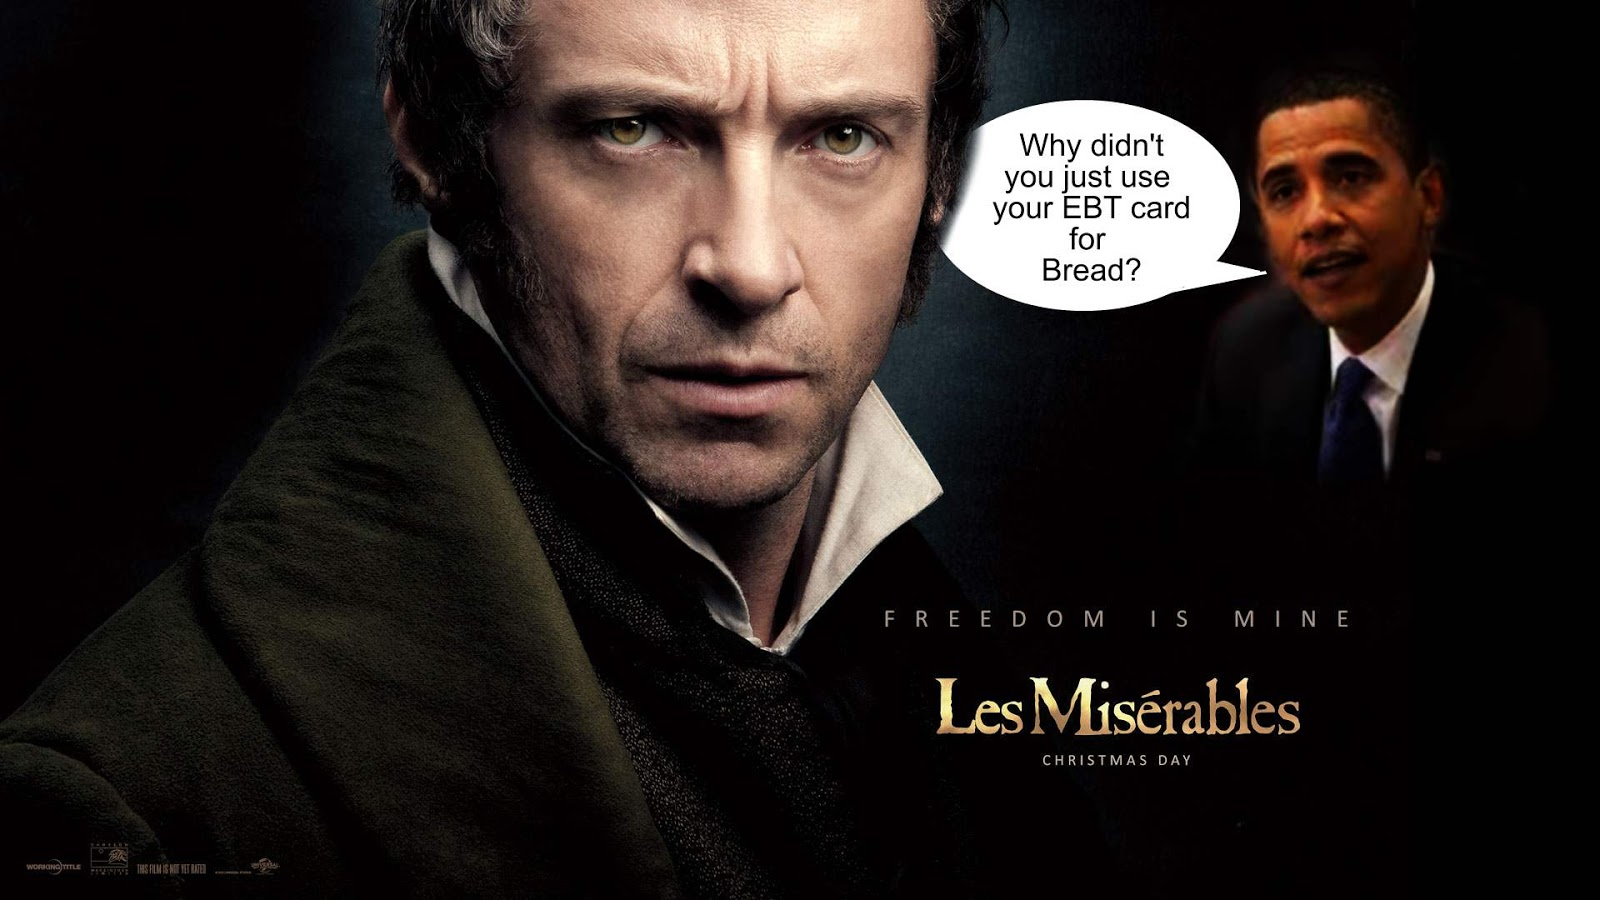 http://3.bp.blogspot.com/-giZvkftmRII/UPwdCZDTofI/AAAAAAAABiA/zviA4RbRrfI/s1600/Les-Miserables-Wallpapers-les-miserables-2012-movie-32692734-1920-1080.jpg